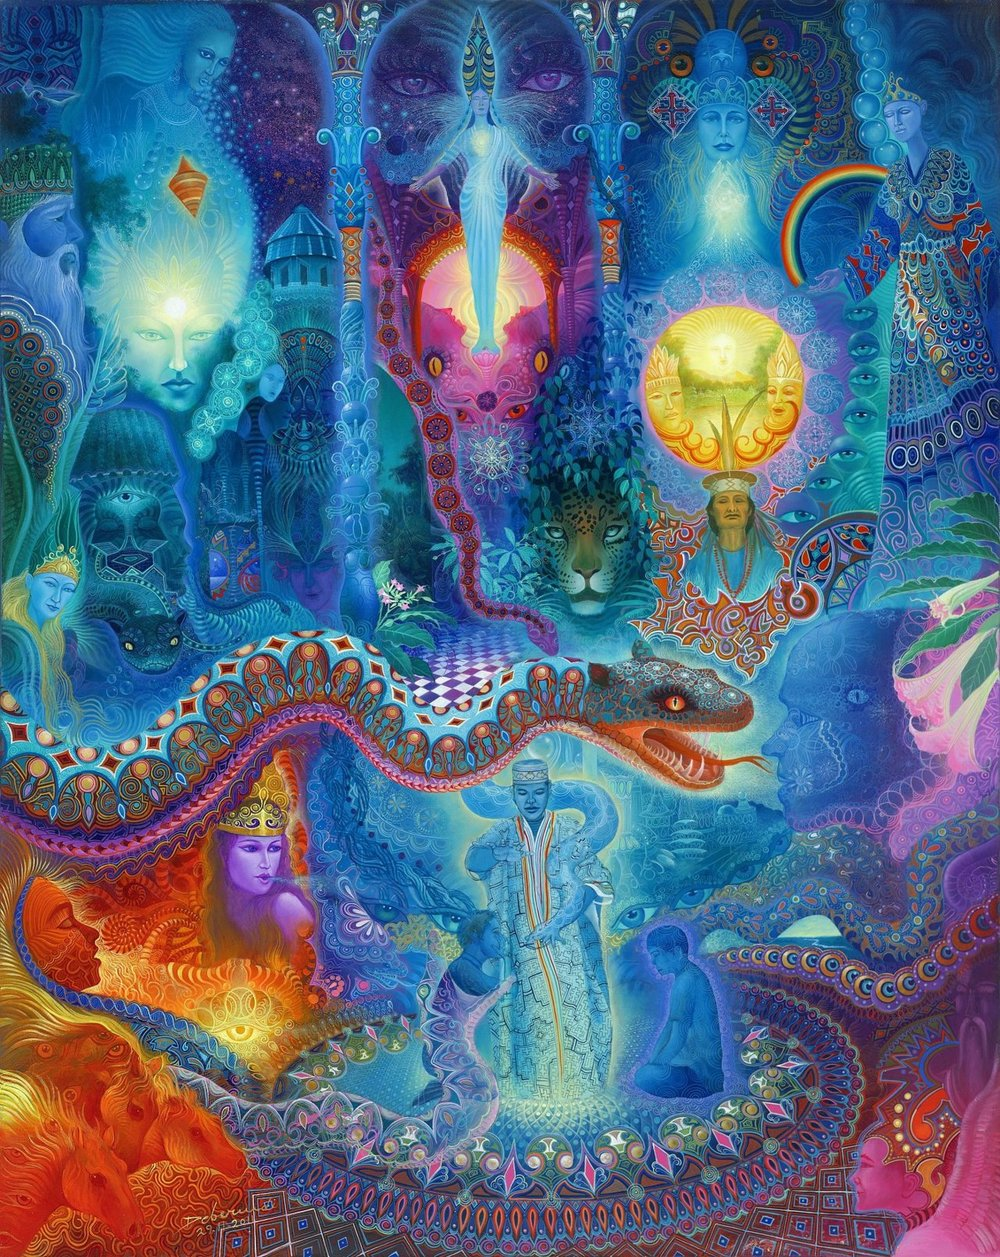 An artists representation of an Ayahuasca vision. I've experienced similar imagery in my own altered states. Visionary Artwork: Andy Debernardi Banner Artwork: Krystleyez